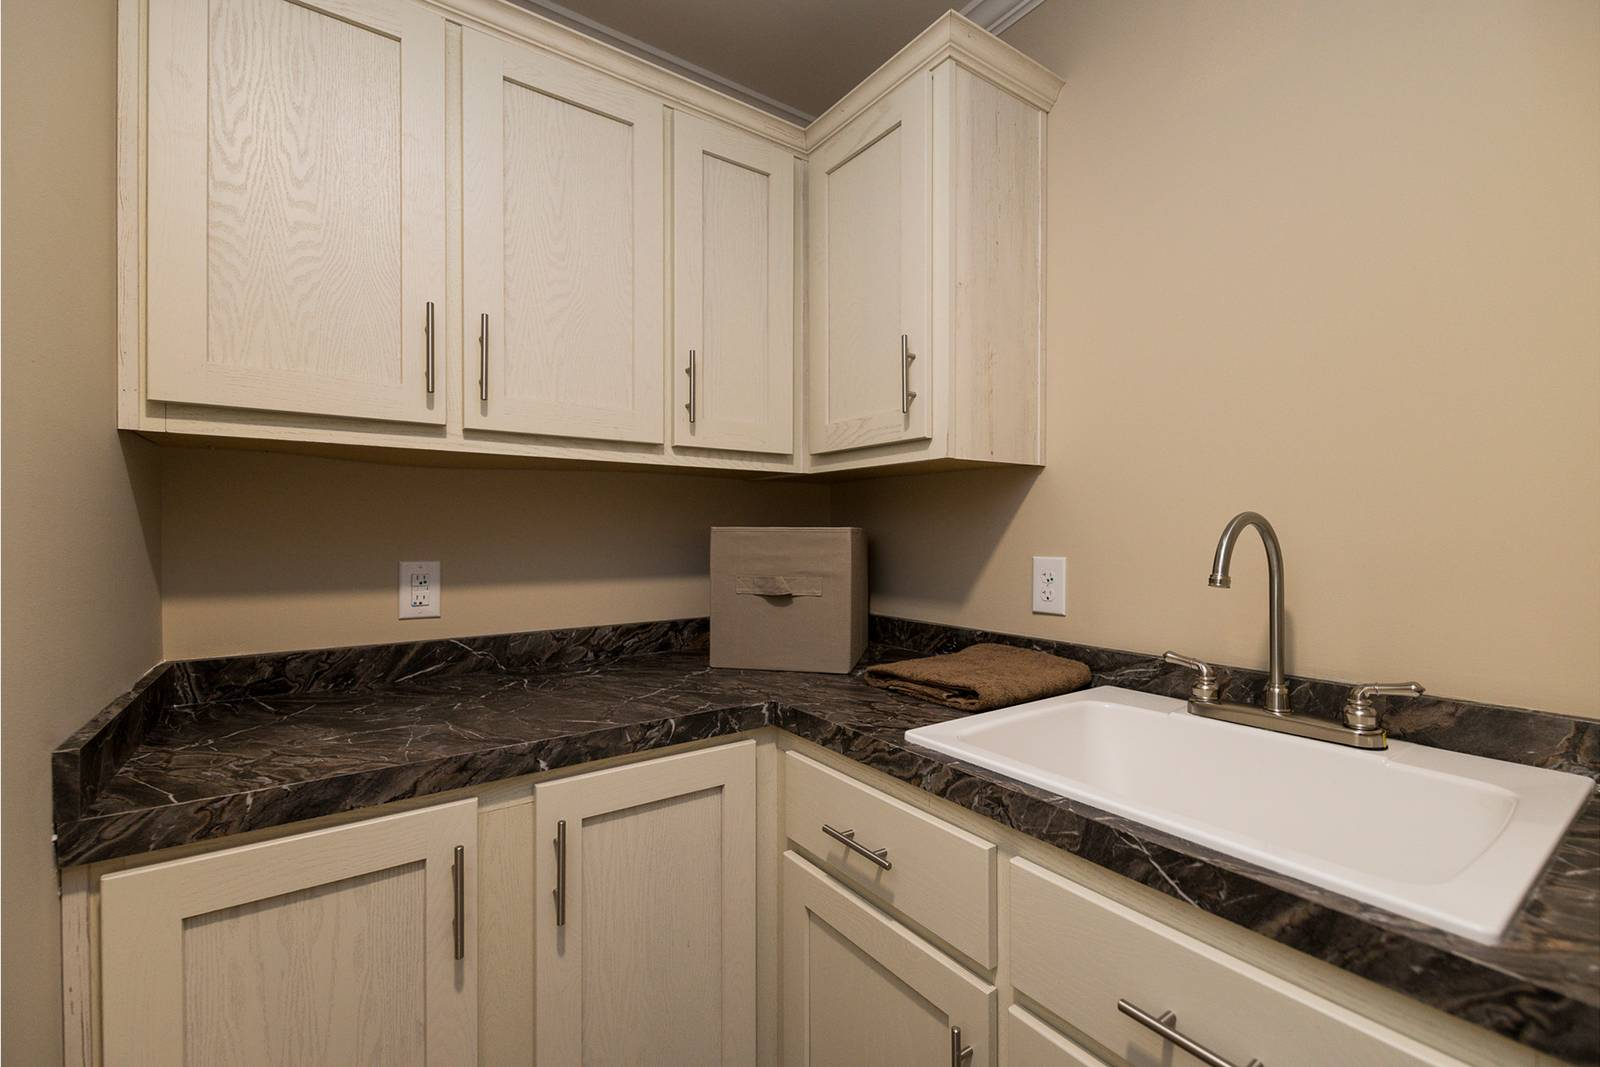 Utility Room From Show Model